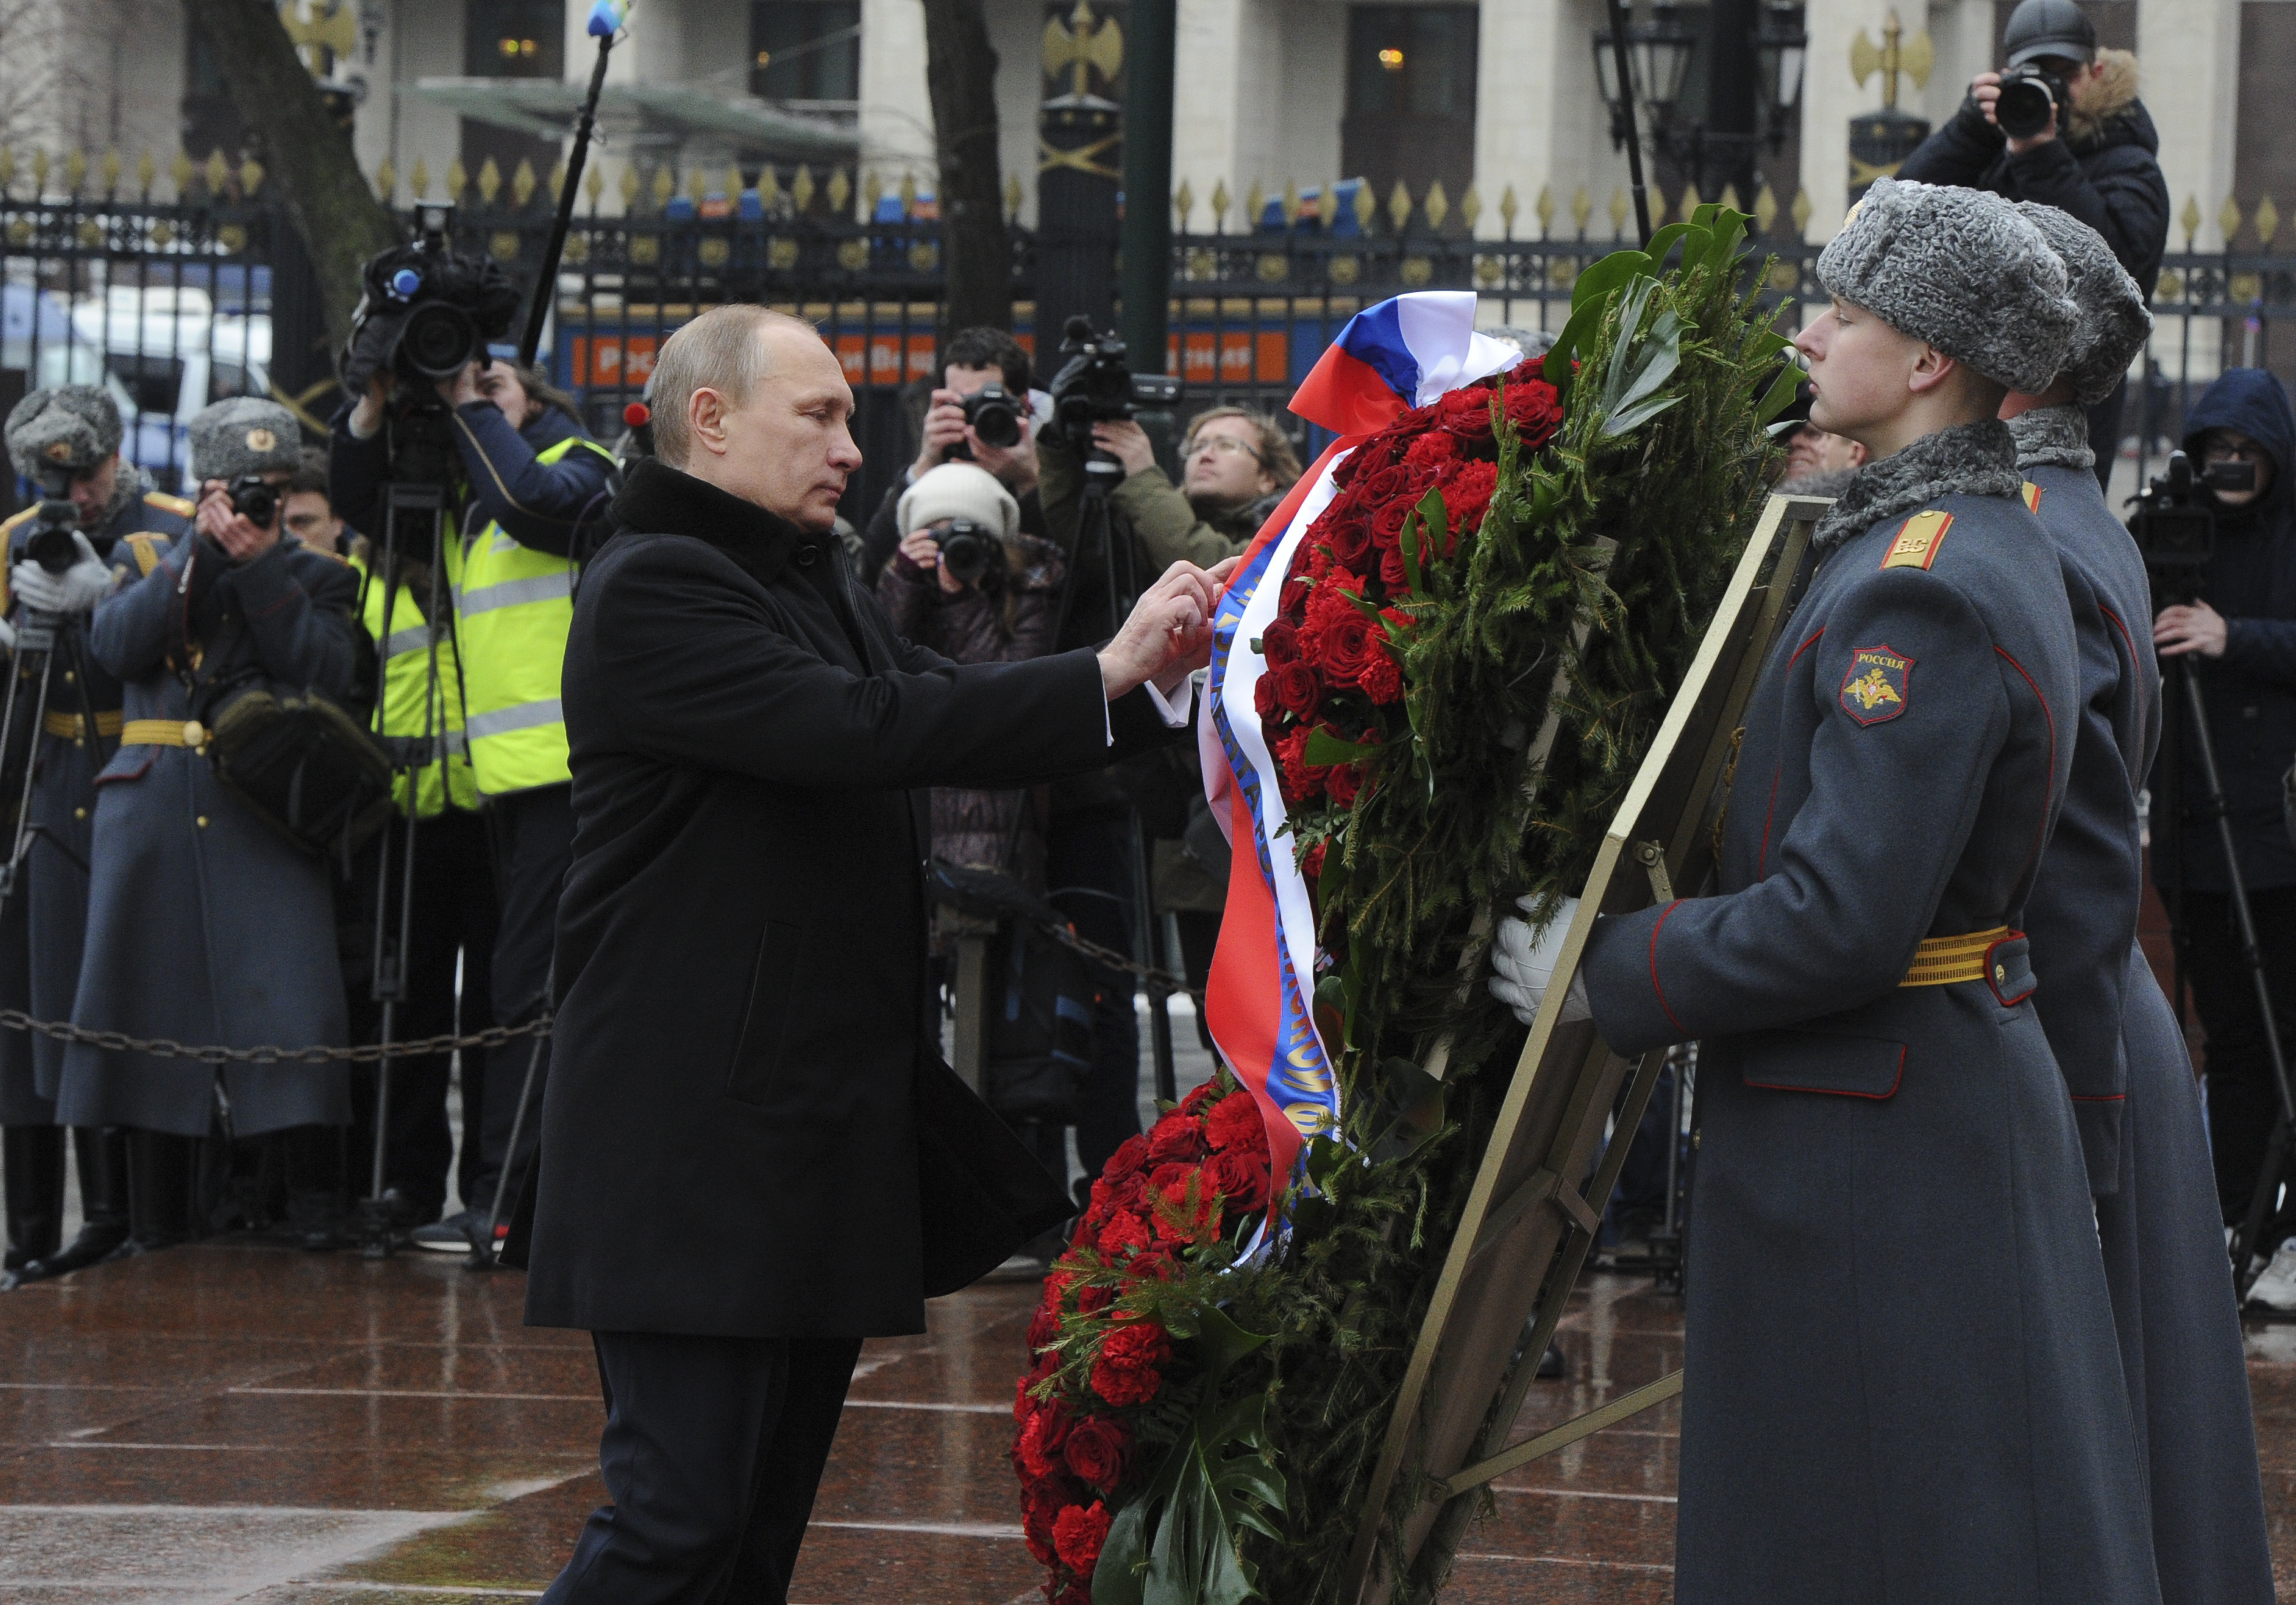 Russian President Putin attends a wreath laying ceremony to mark the Defender of the Fatherland Day in Moscow